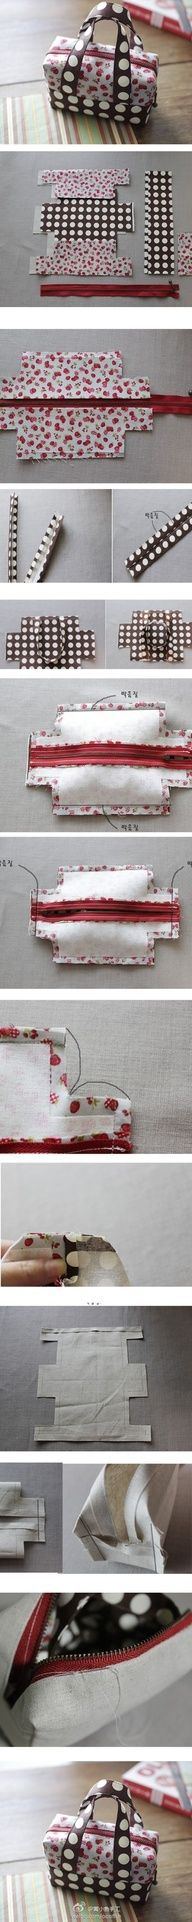 Cute bag! I'd use different colors, but its pretty simple!